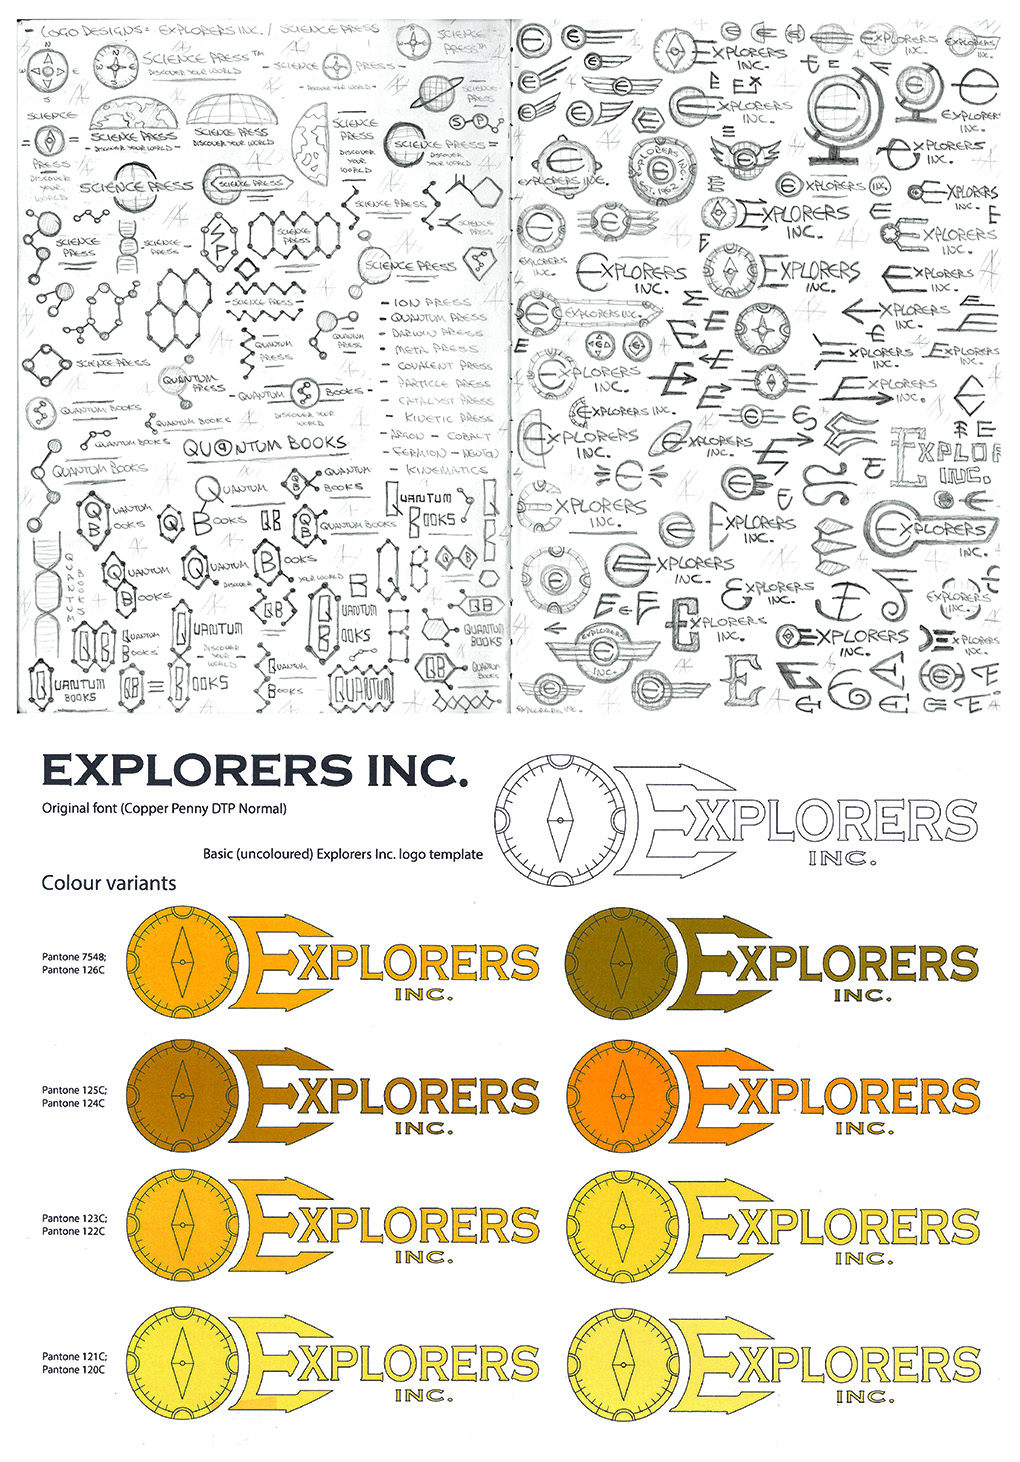 The Explorers Inc. logo!